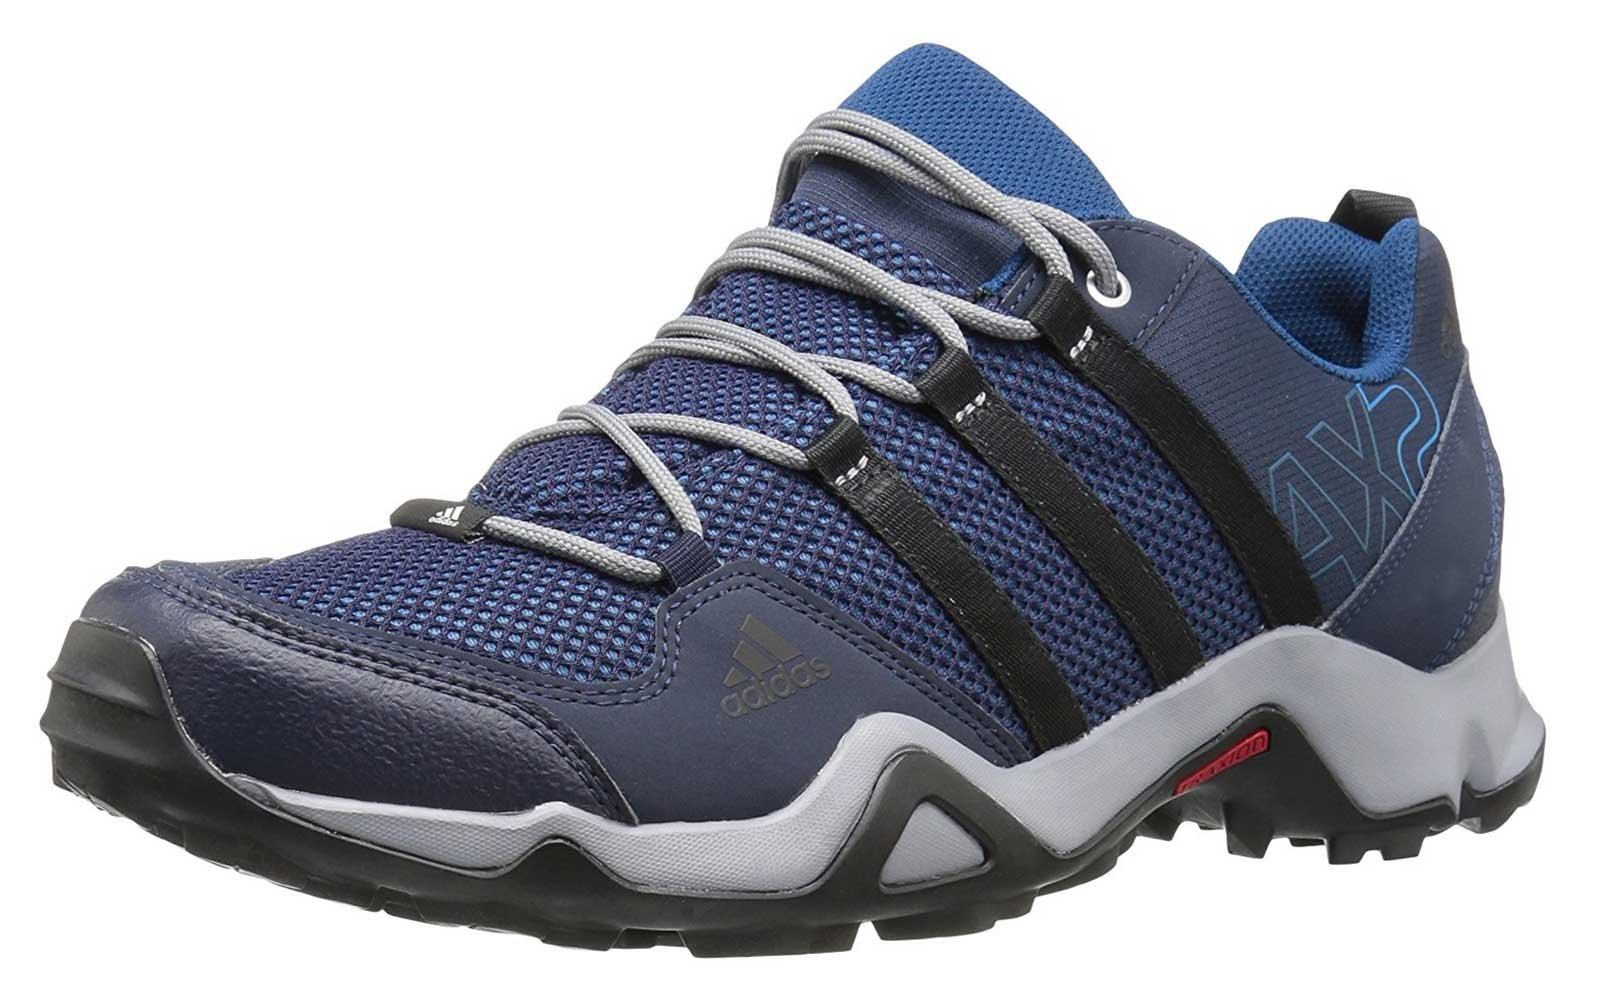 9c05af97efb88 The 10 Best Hiking Shoes on Amazon | Travel + Leisure